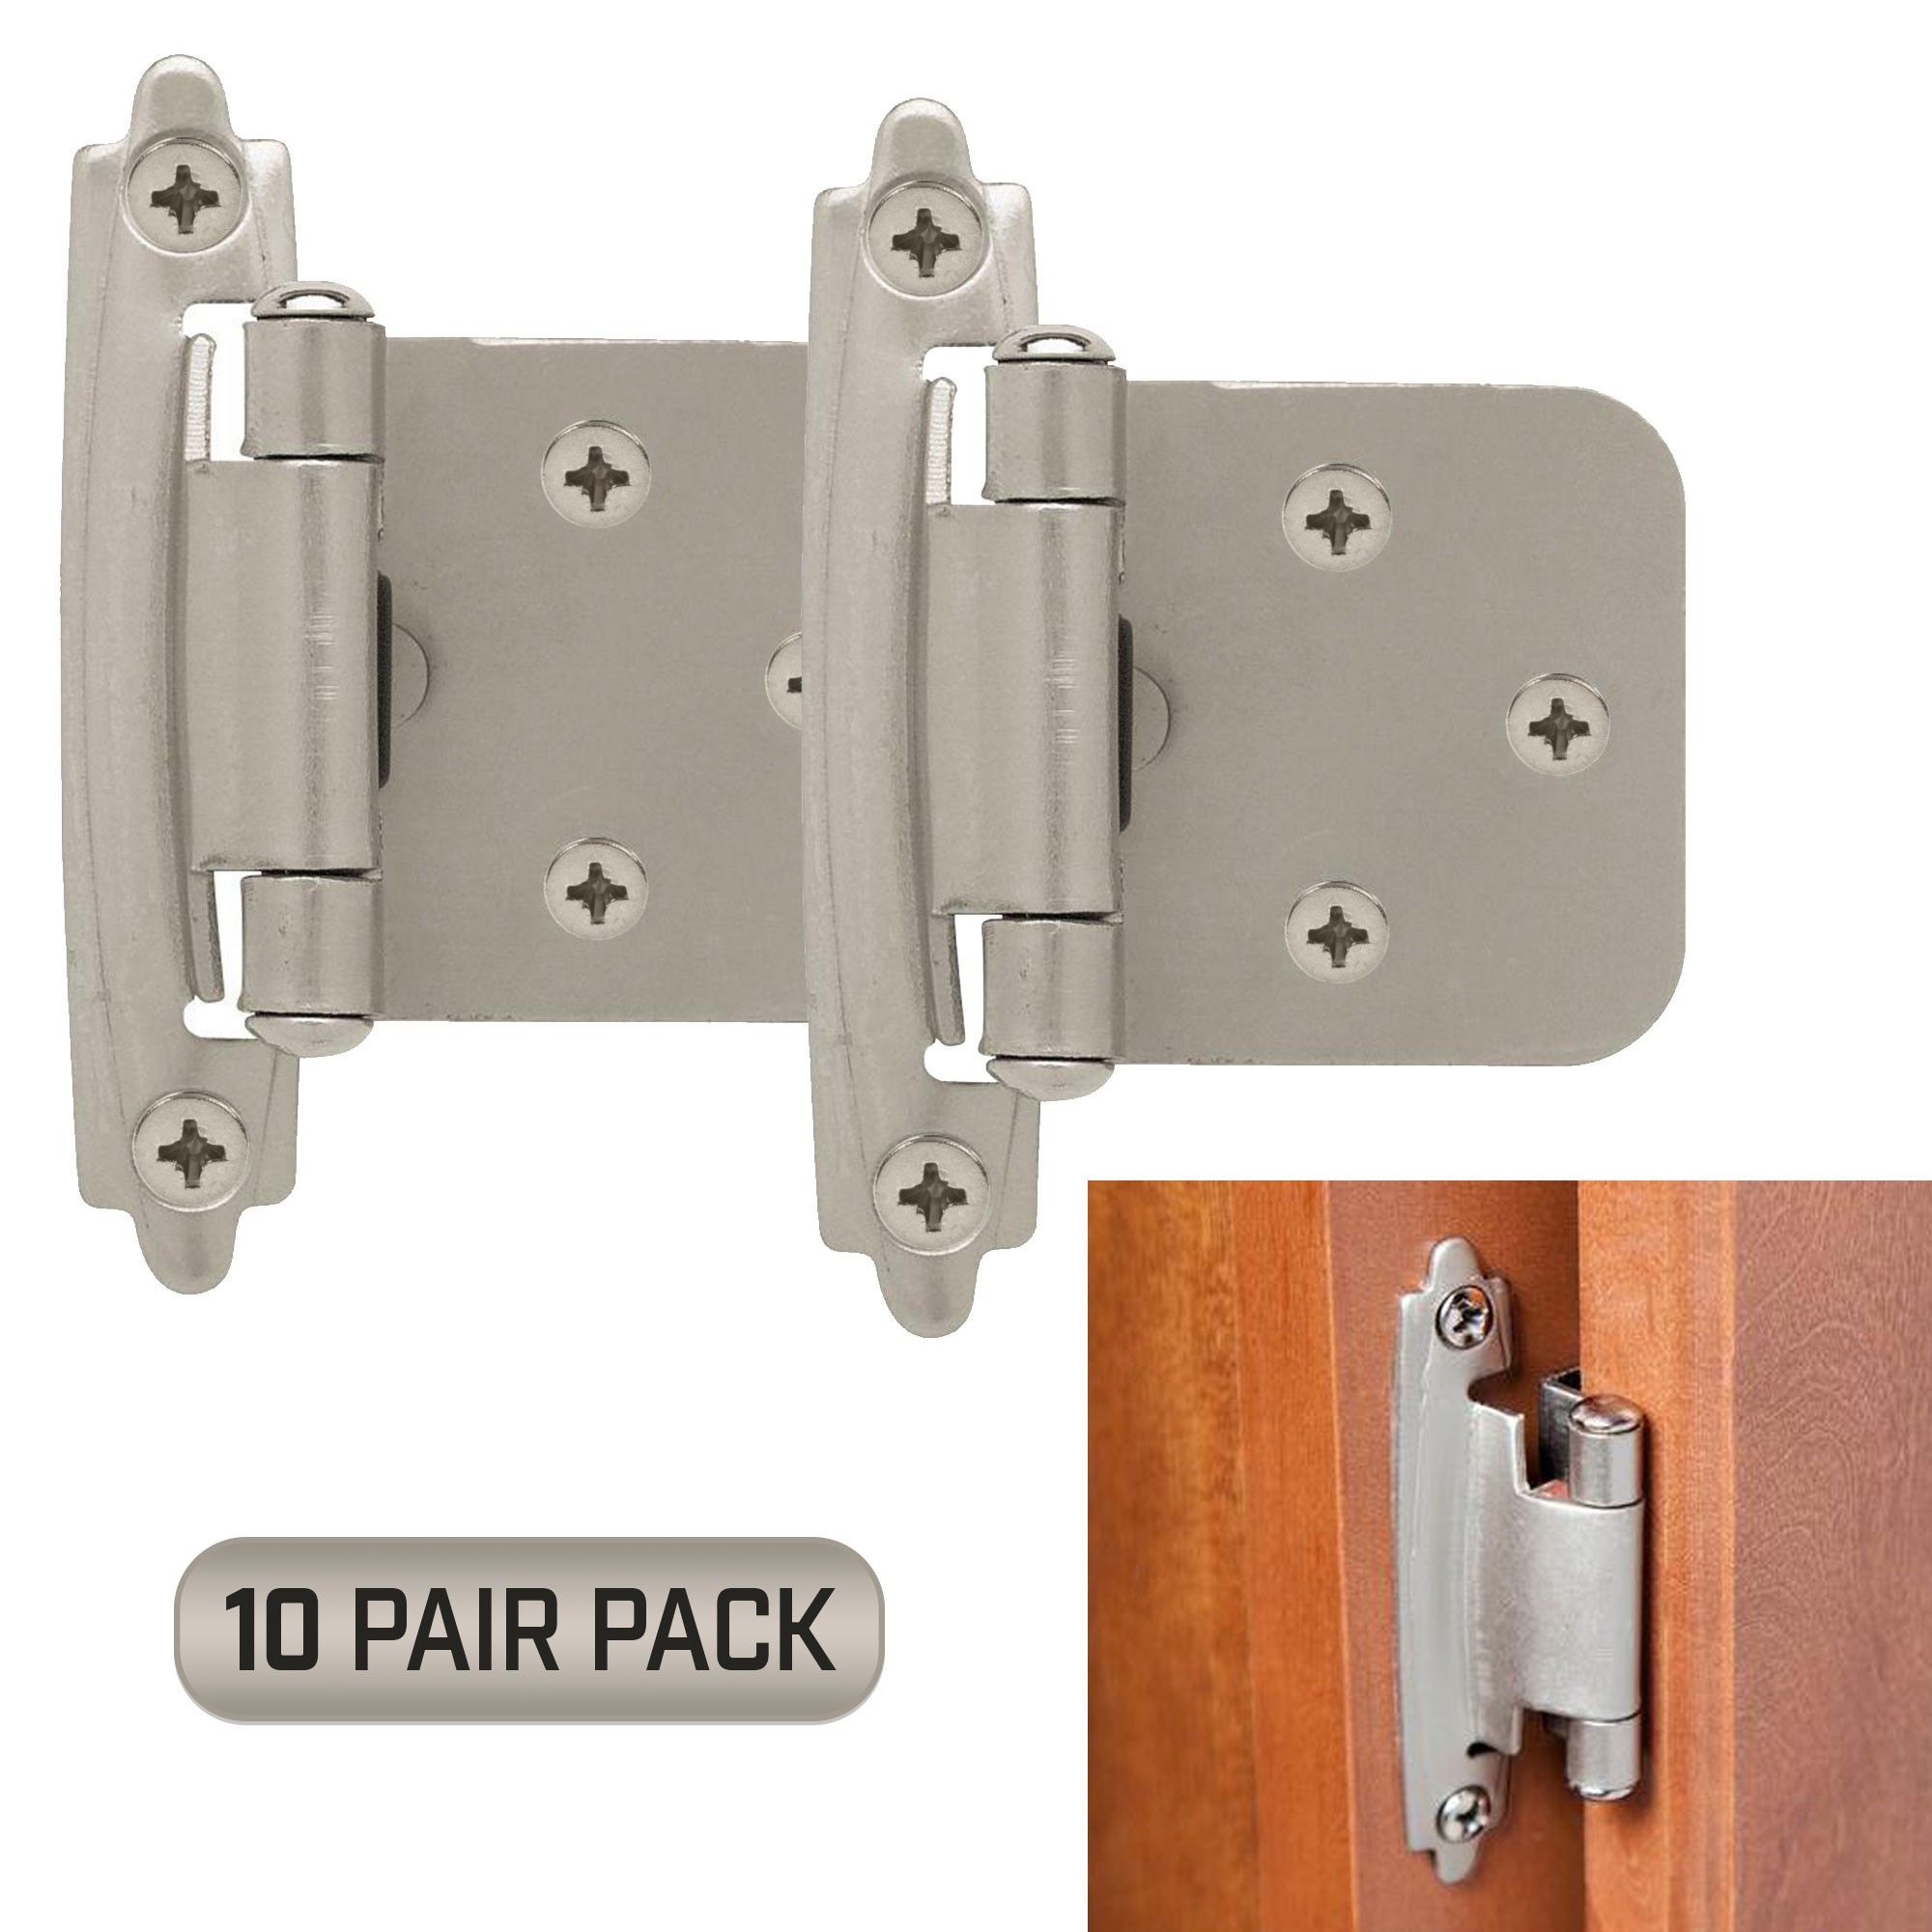 Classic Hardware Kitchen Cabinet Door Hinges 10 Pair Pack 20 Pieces Self Closing Satin Nickel Kitchen Cabinets Door Hinges Kitchen Cabinets Hinges Cabinet Hardware Hinges